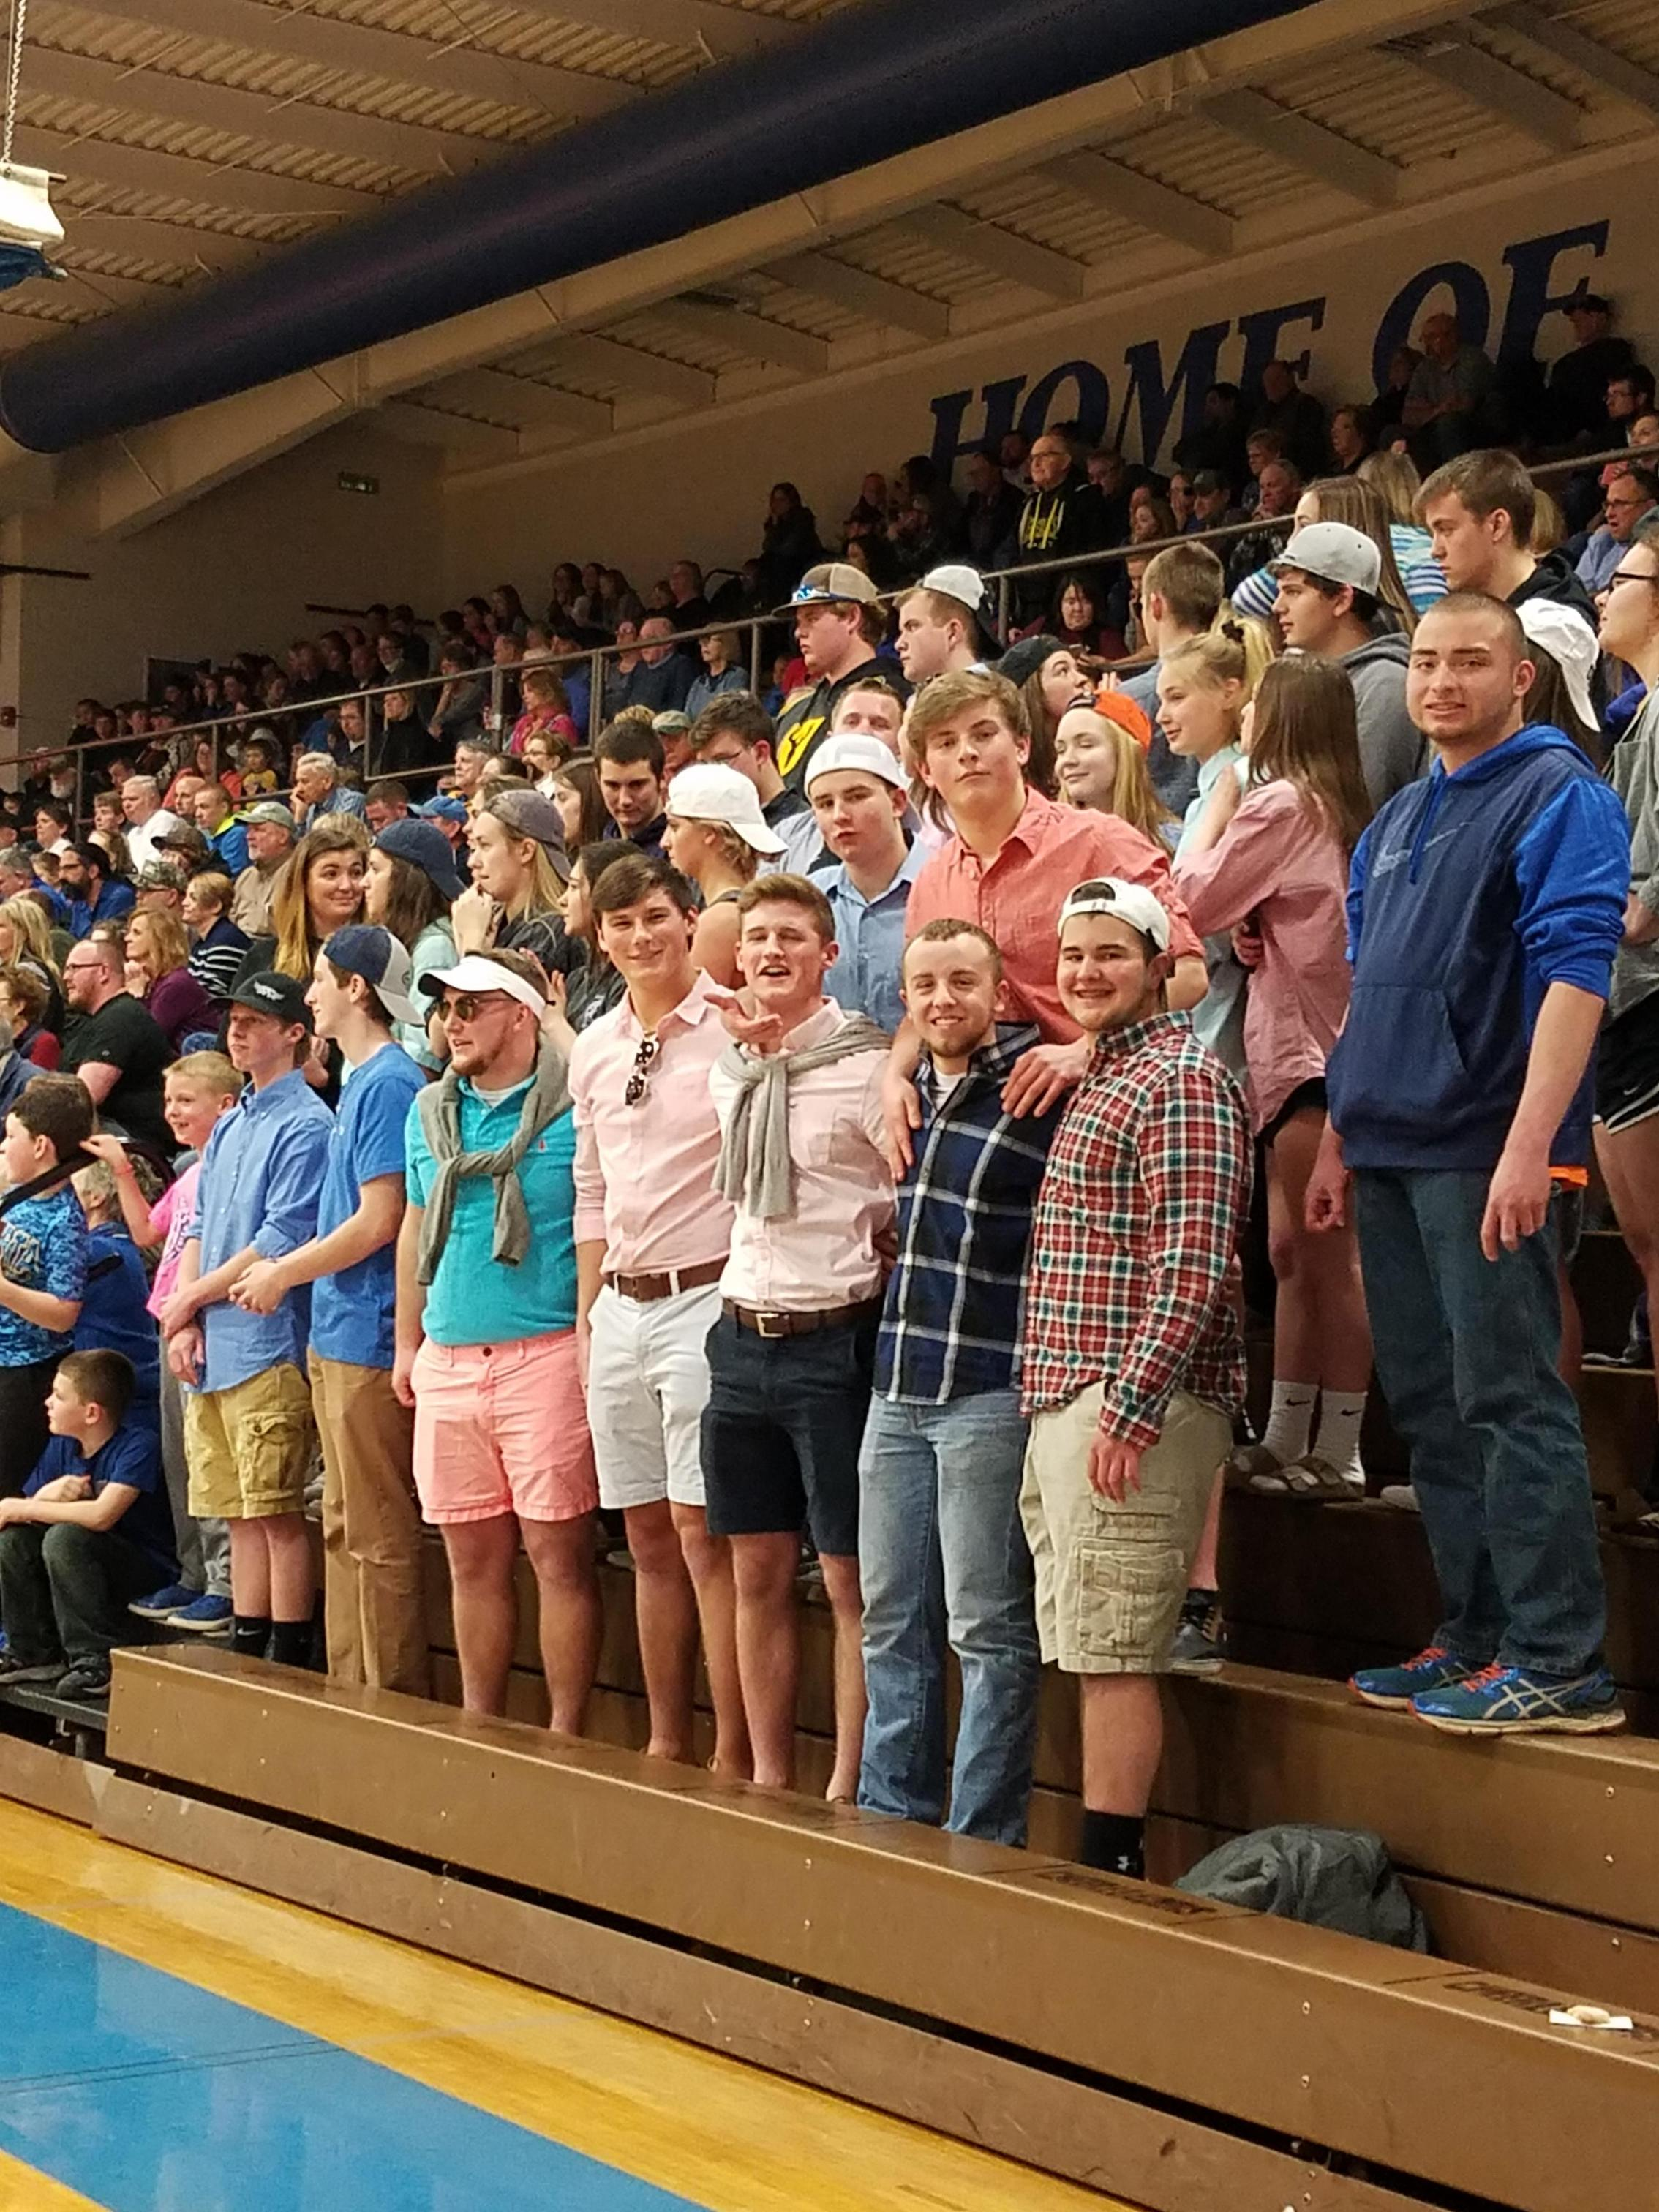 Student section at basketball game.